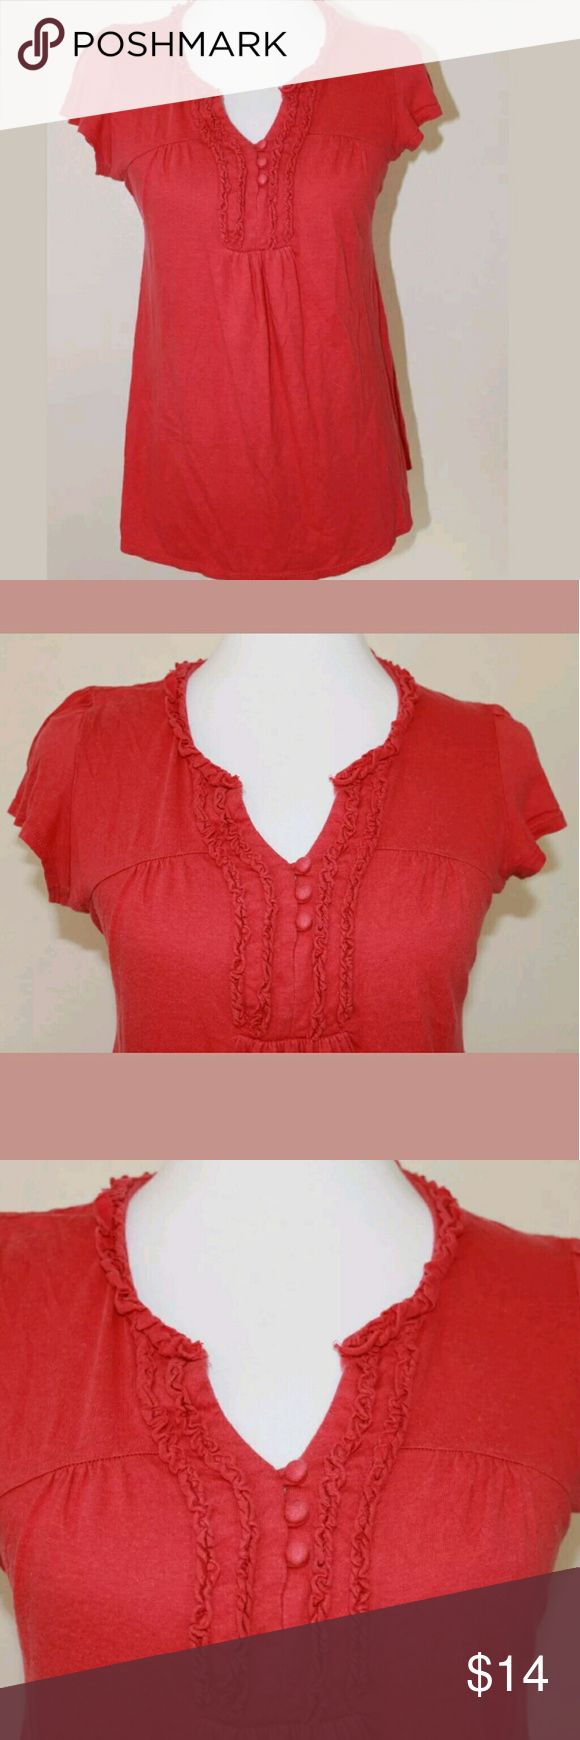 Oh Baby by Motherhood Small Red Maternity SS Top Oh Baby by Motherhood Red Maternity Short Sleeve Top  Ruffles & buttons across the chest. Waist tie for a fitted look.   Size: Small   Fabric: 54% cotton, 46% modal  Care: Machine wash cold with like colors. Tumble dry low.   Smoke free home. Oh Baby by Motherhood Tops Blouses